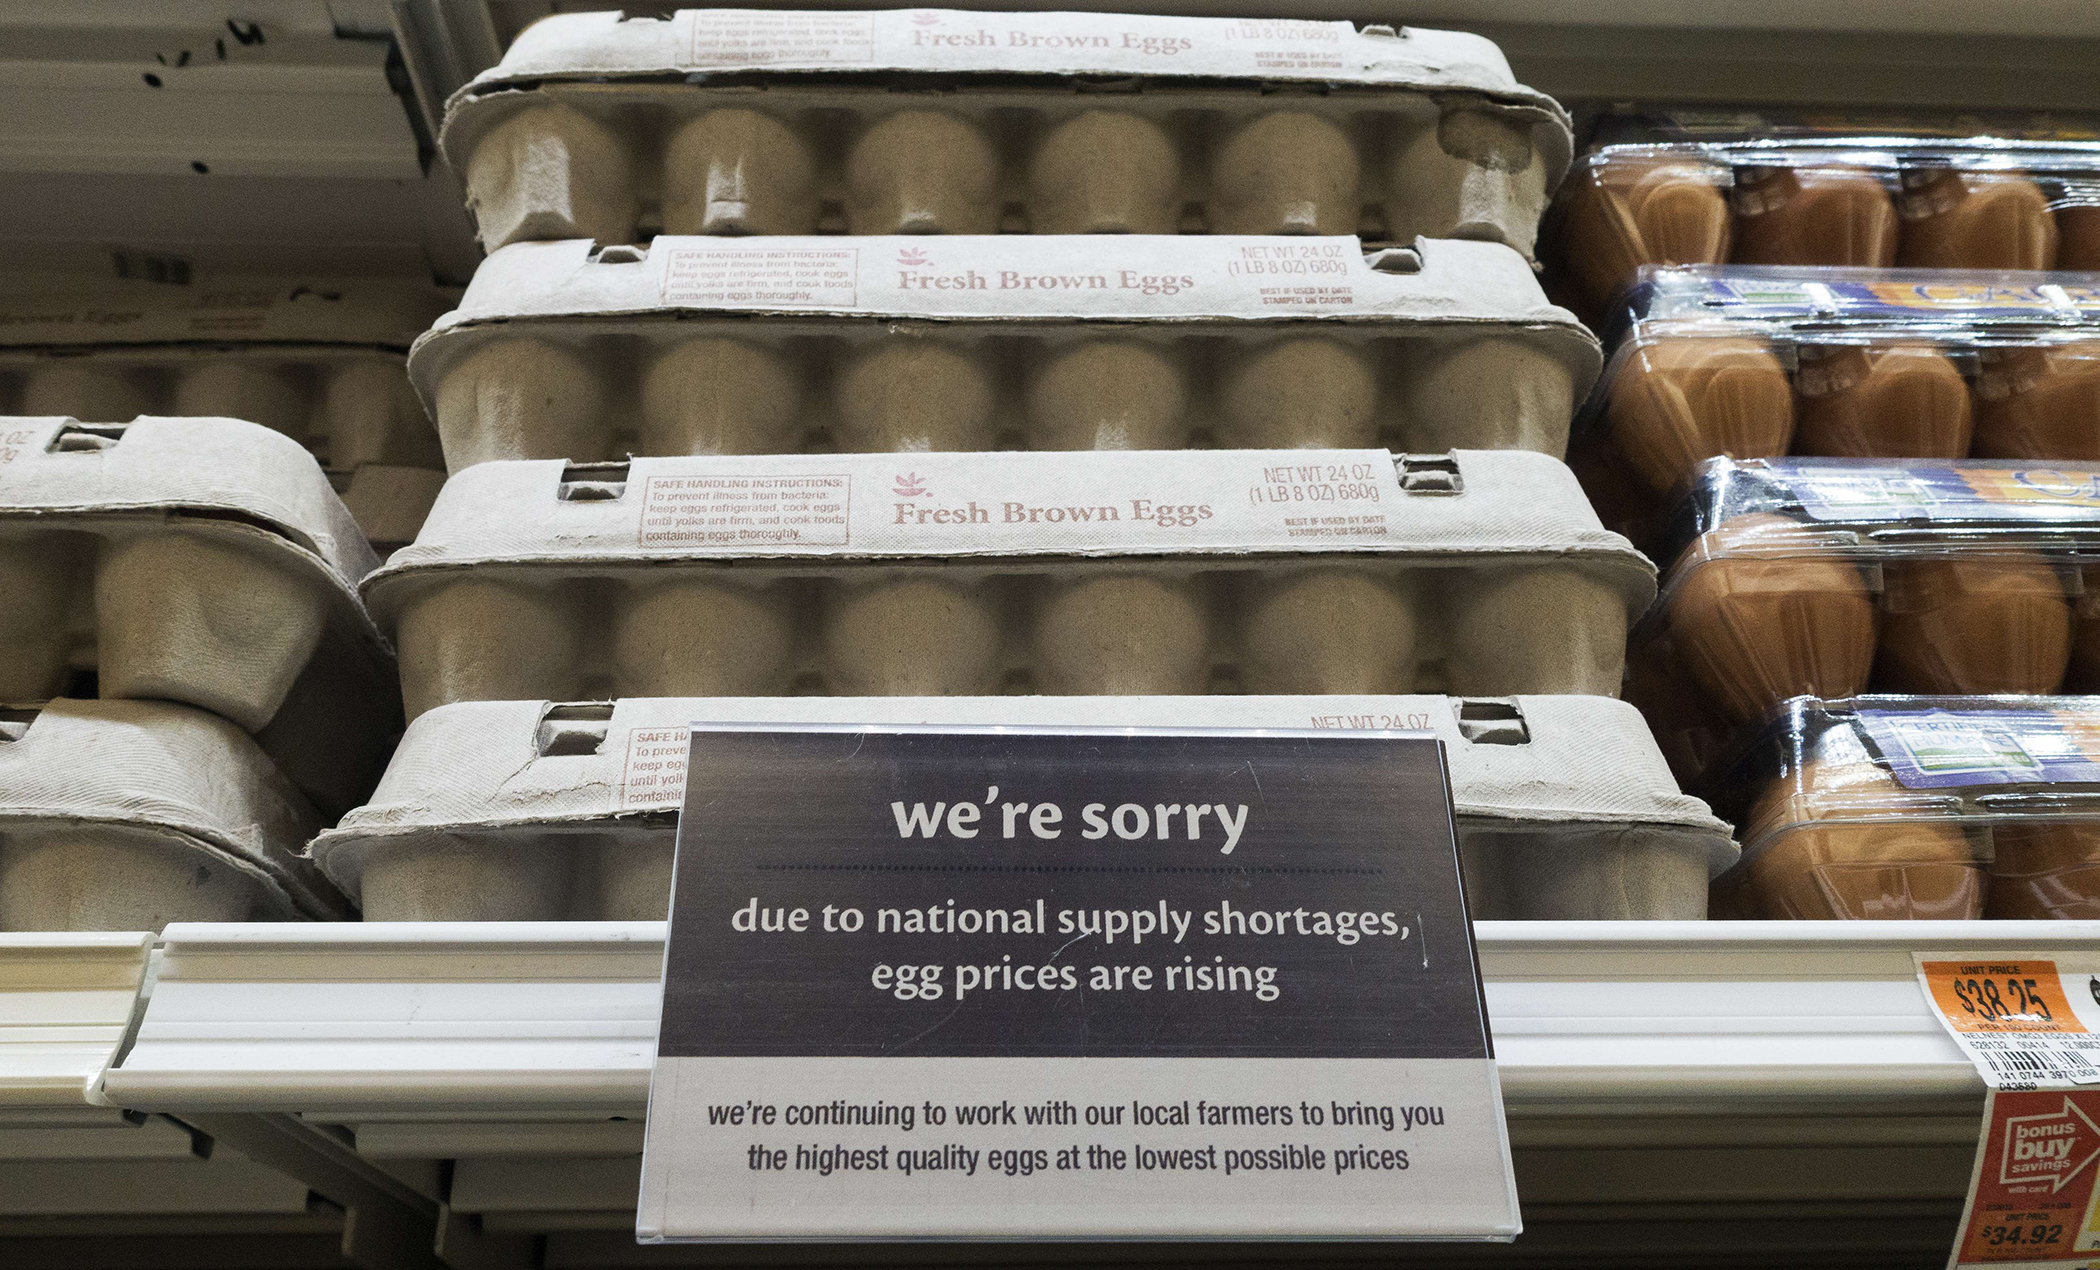 A notice that the price of eggs will be rising soon is seen on June 4, 2015, at a Giant grocery store in Clifton, Virginia.